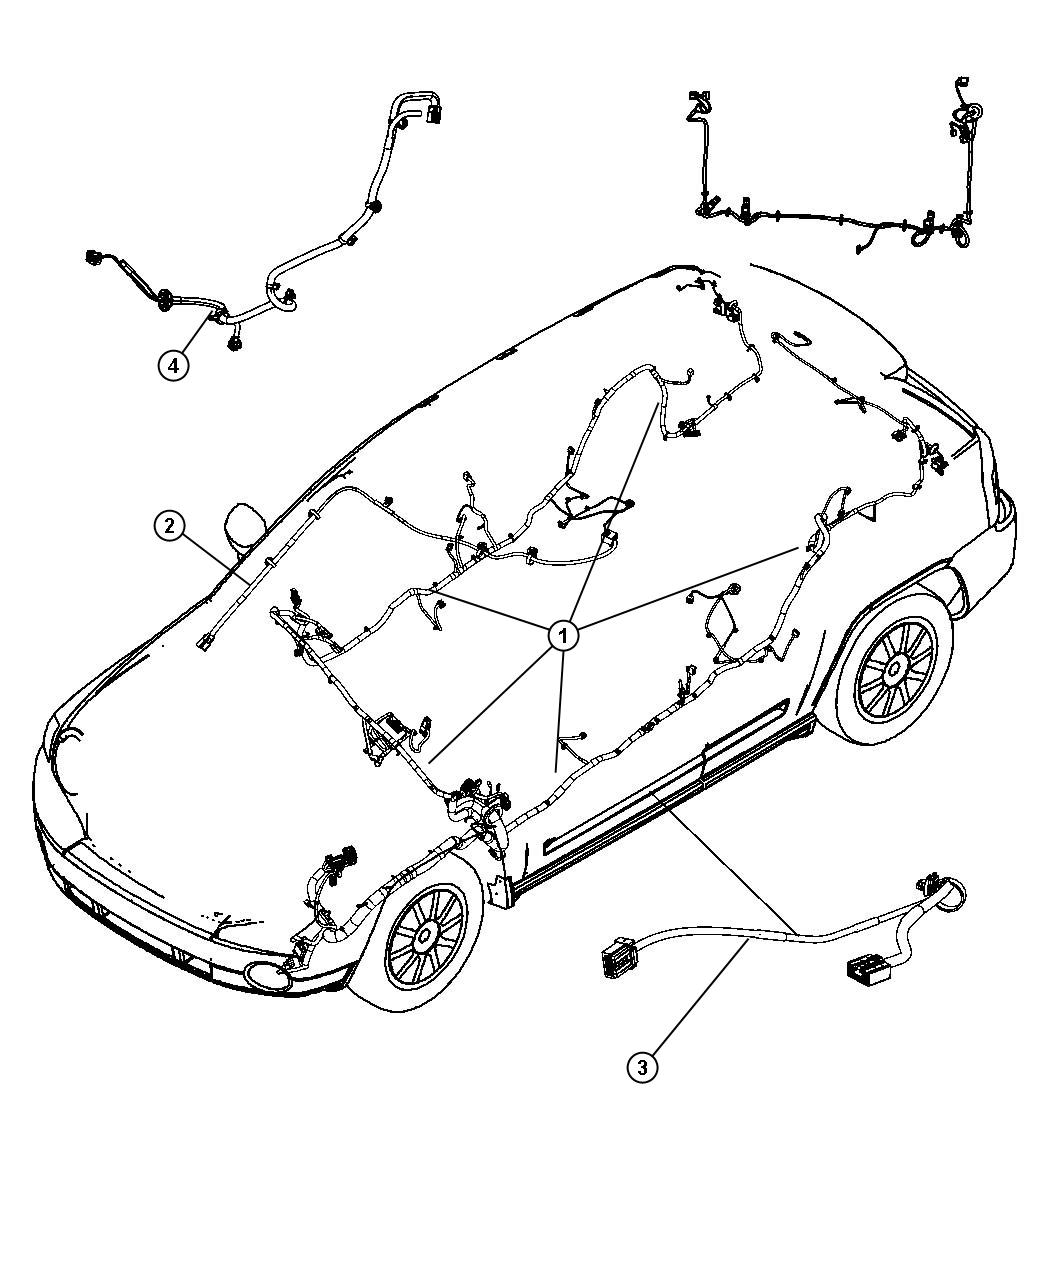 Jeep Patriot Wiring Unified Body